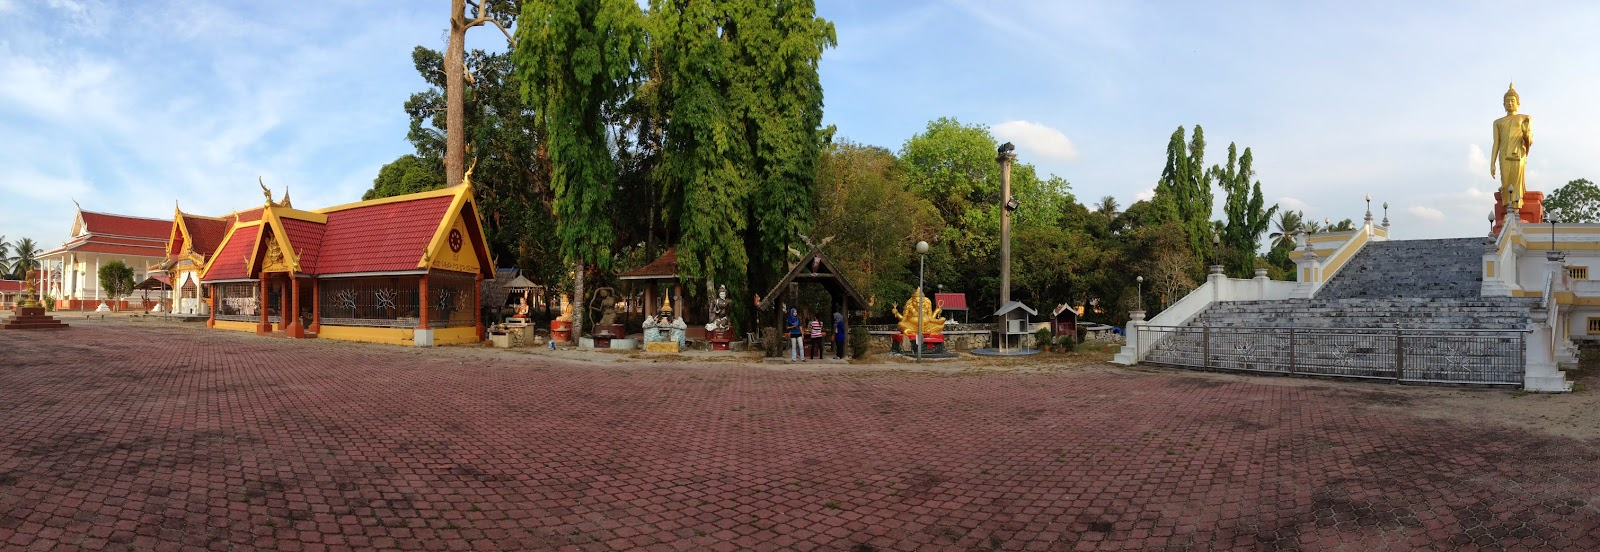 Wat Phikulthong ground